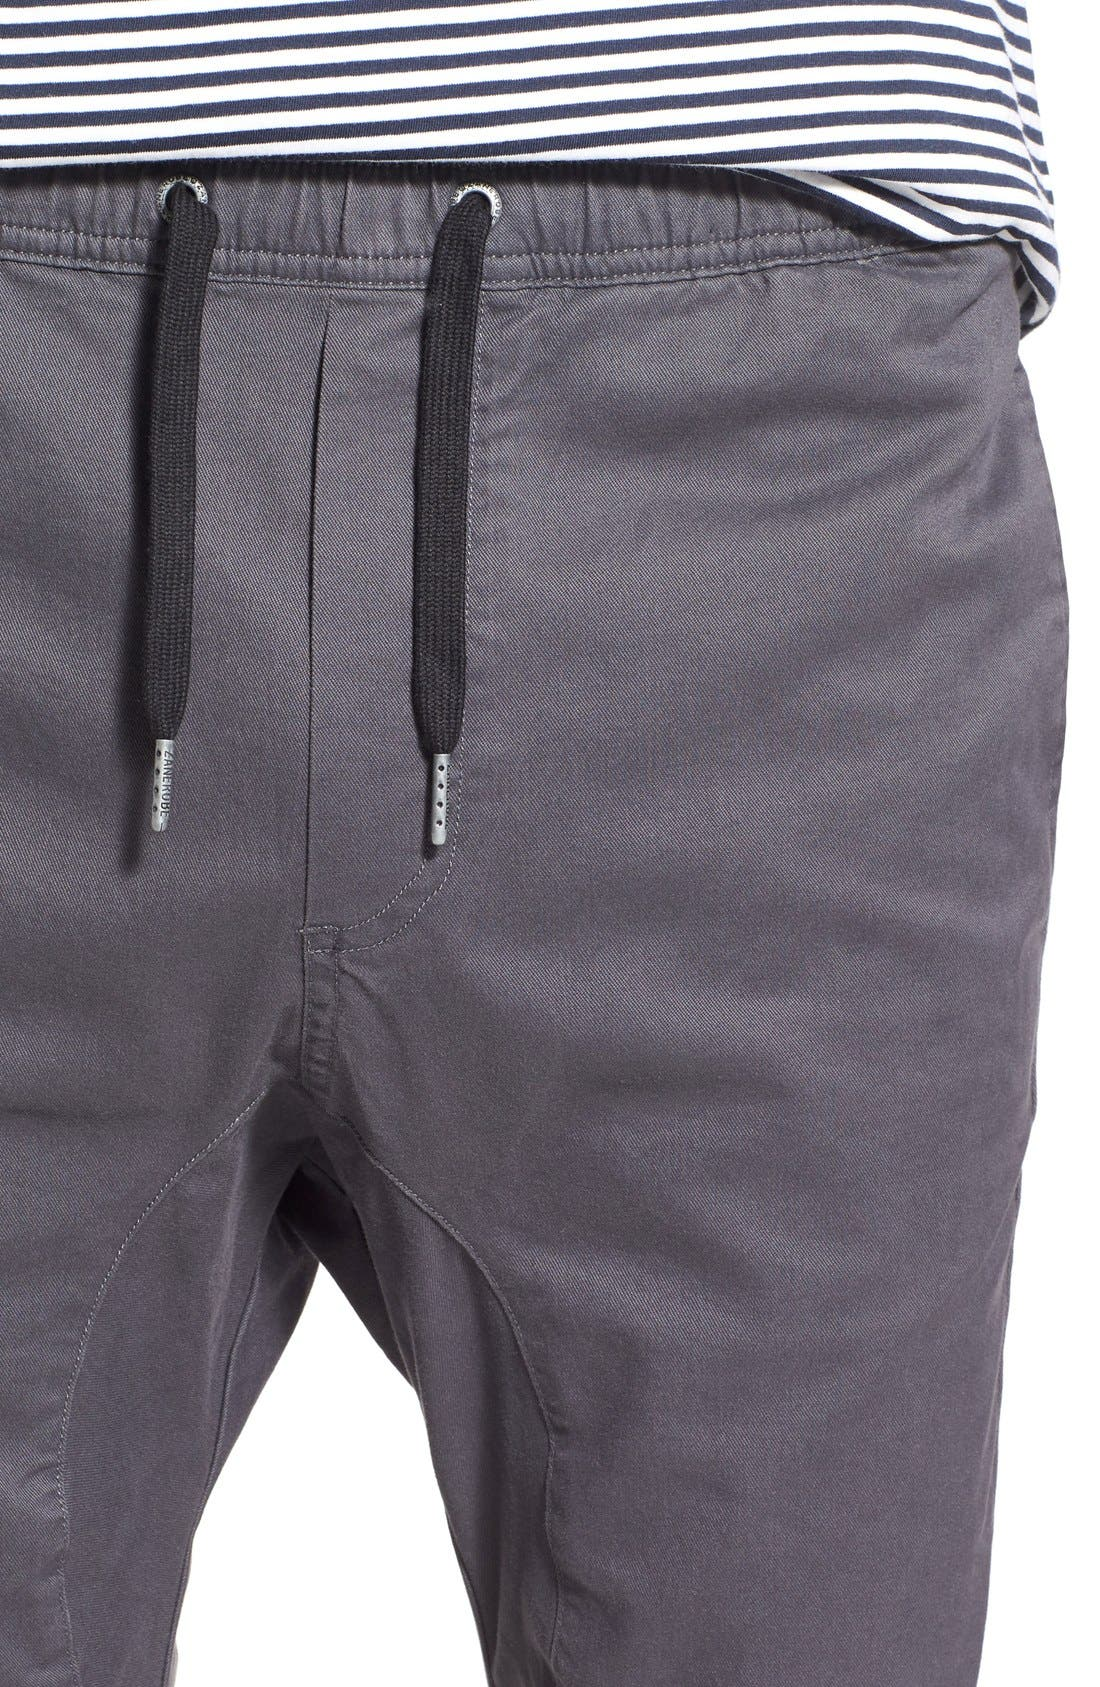 ZANEROBE, Salerno Jogger Pants, Alternate thumbnail 4, color, 022